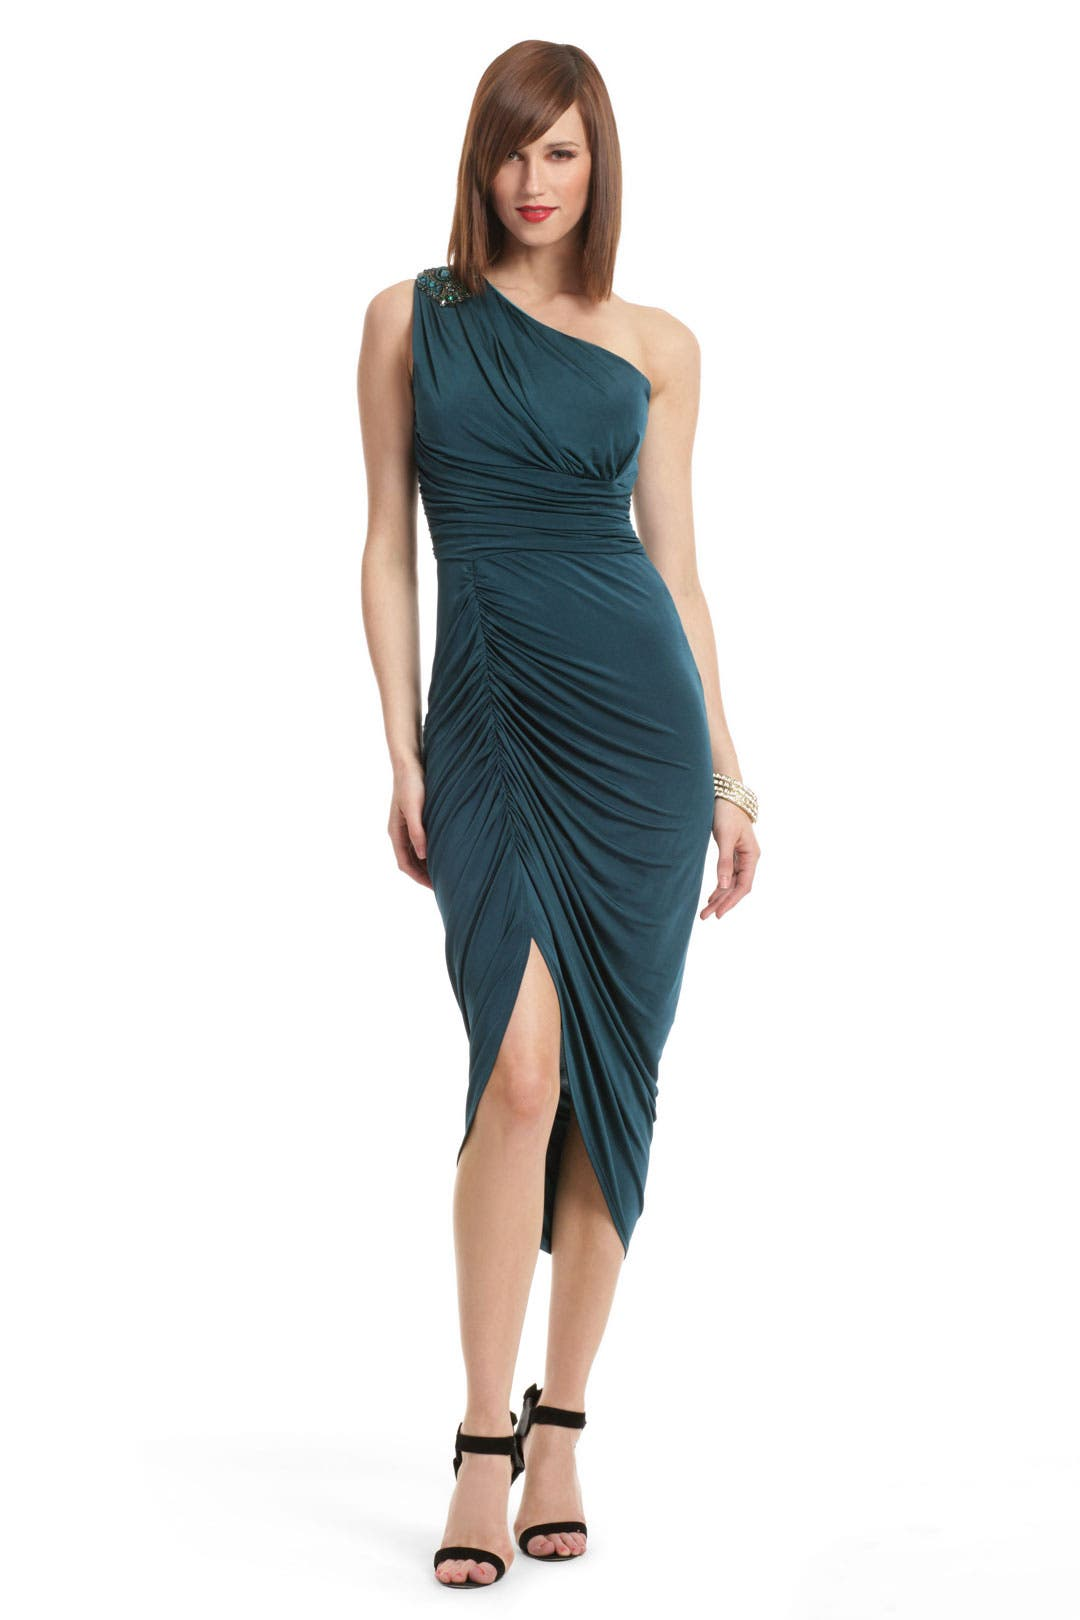 Daring Deep Emerald Dress by David Meister